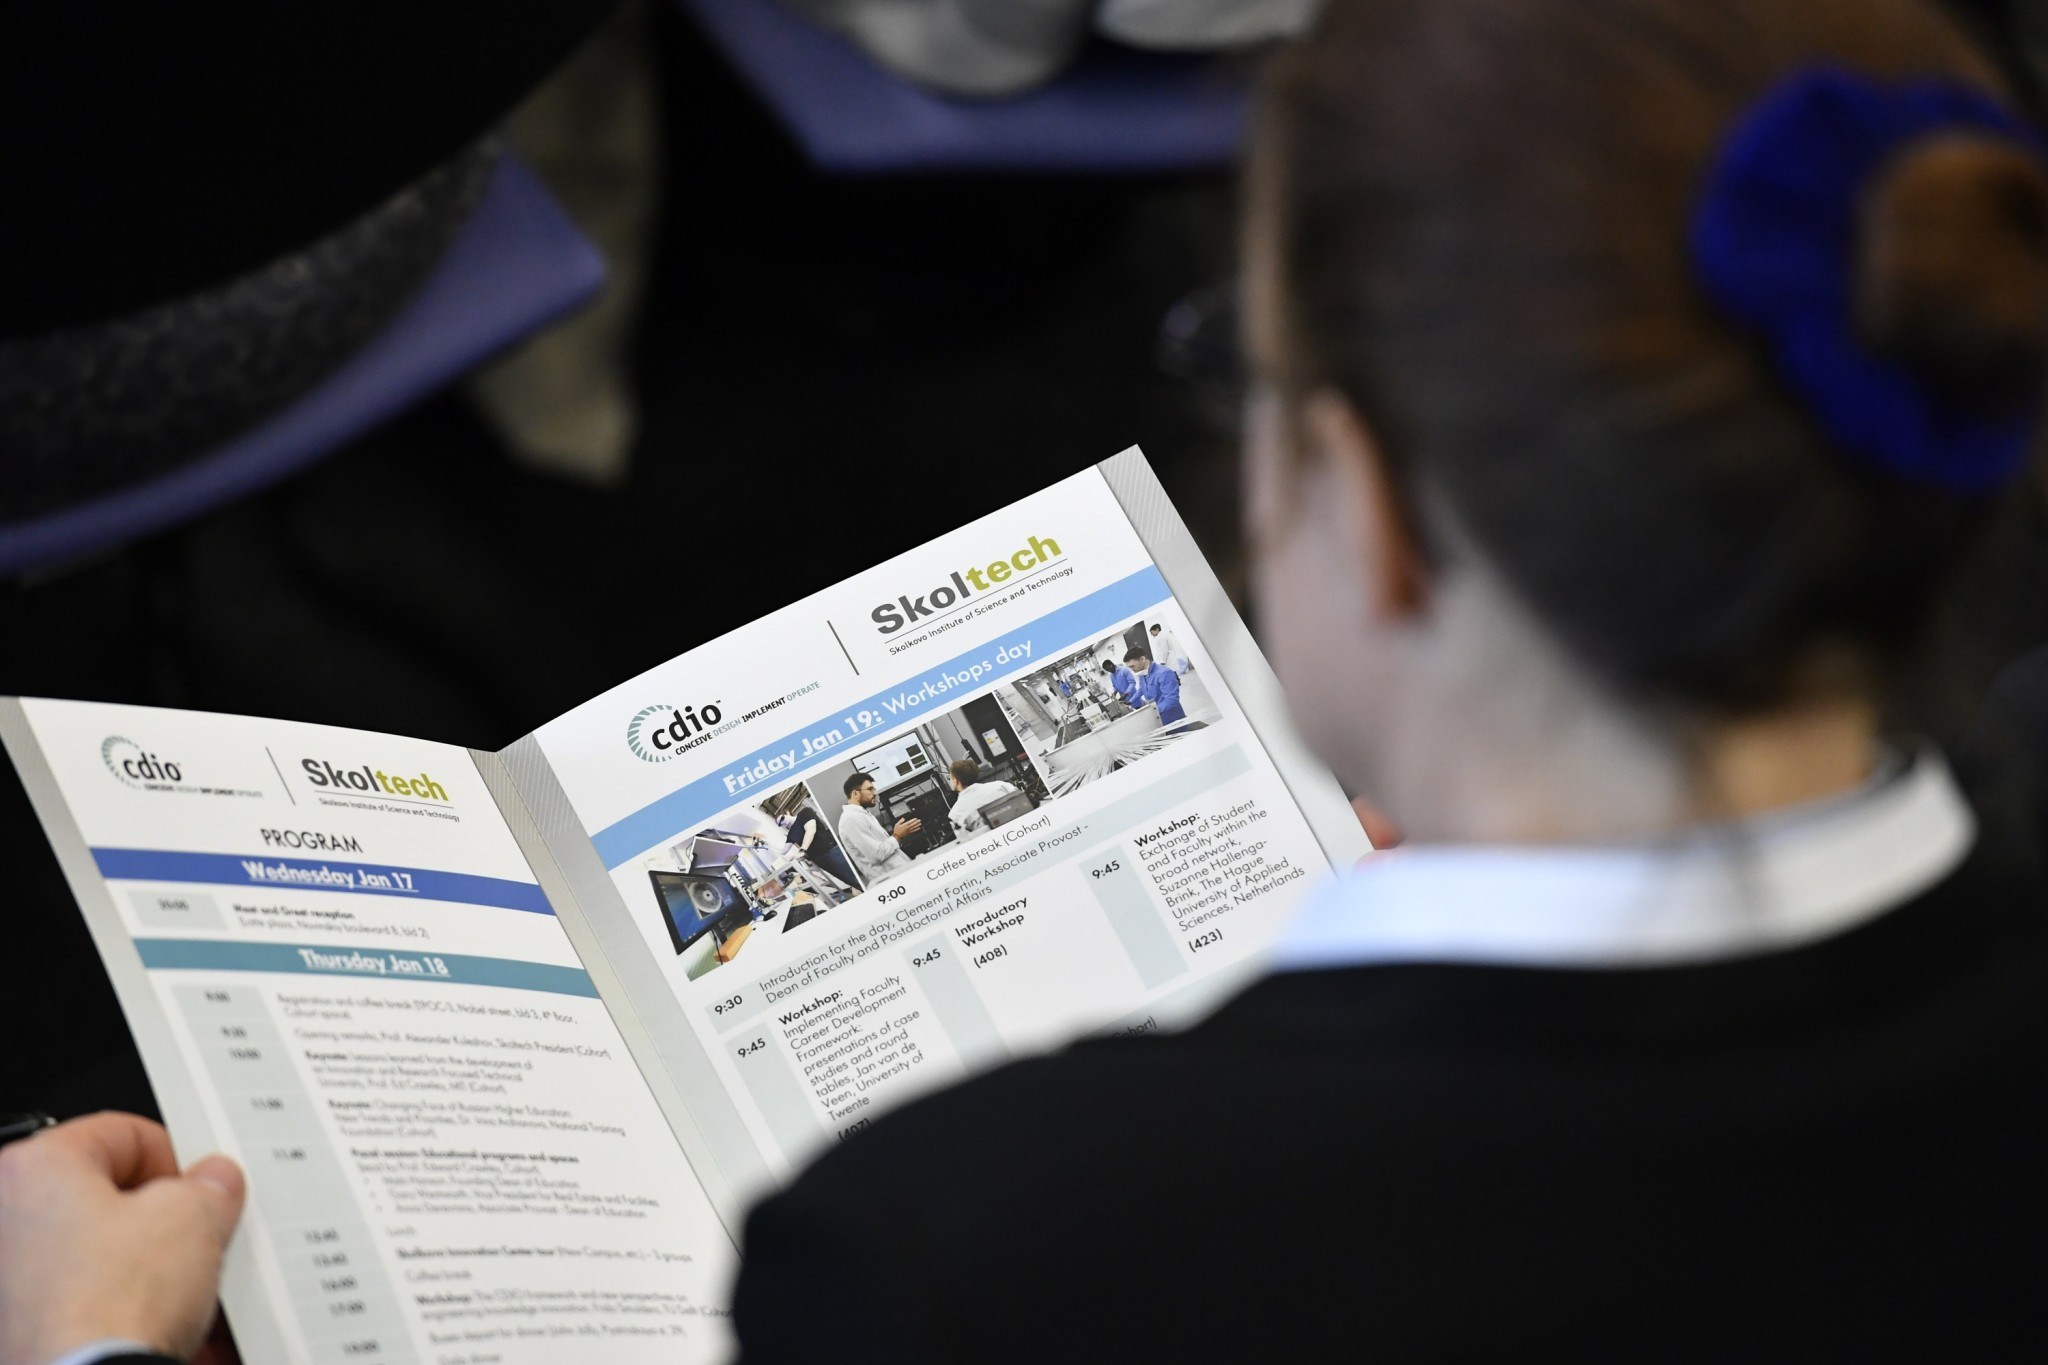 A CDIO participant browses the program of the event. Photo: Skoltech.